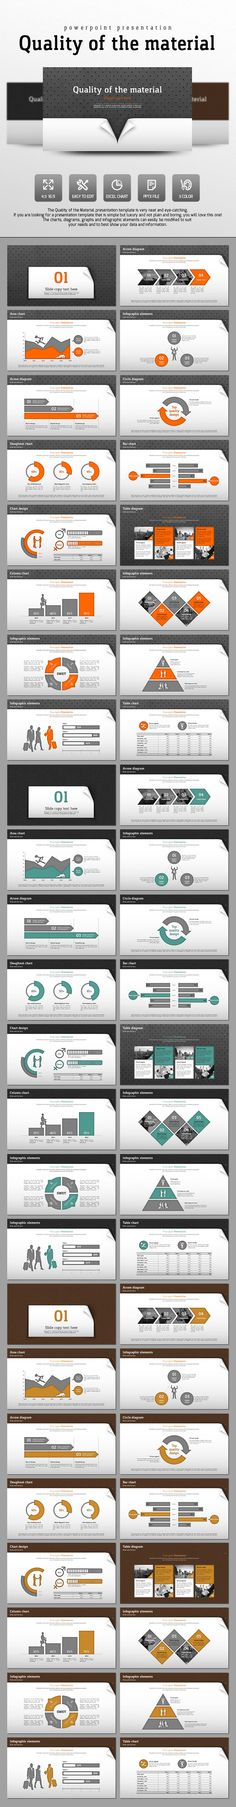 Quality of the Material (PowerPoint Templates)